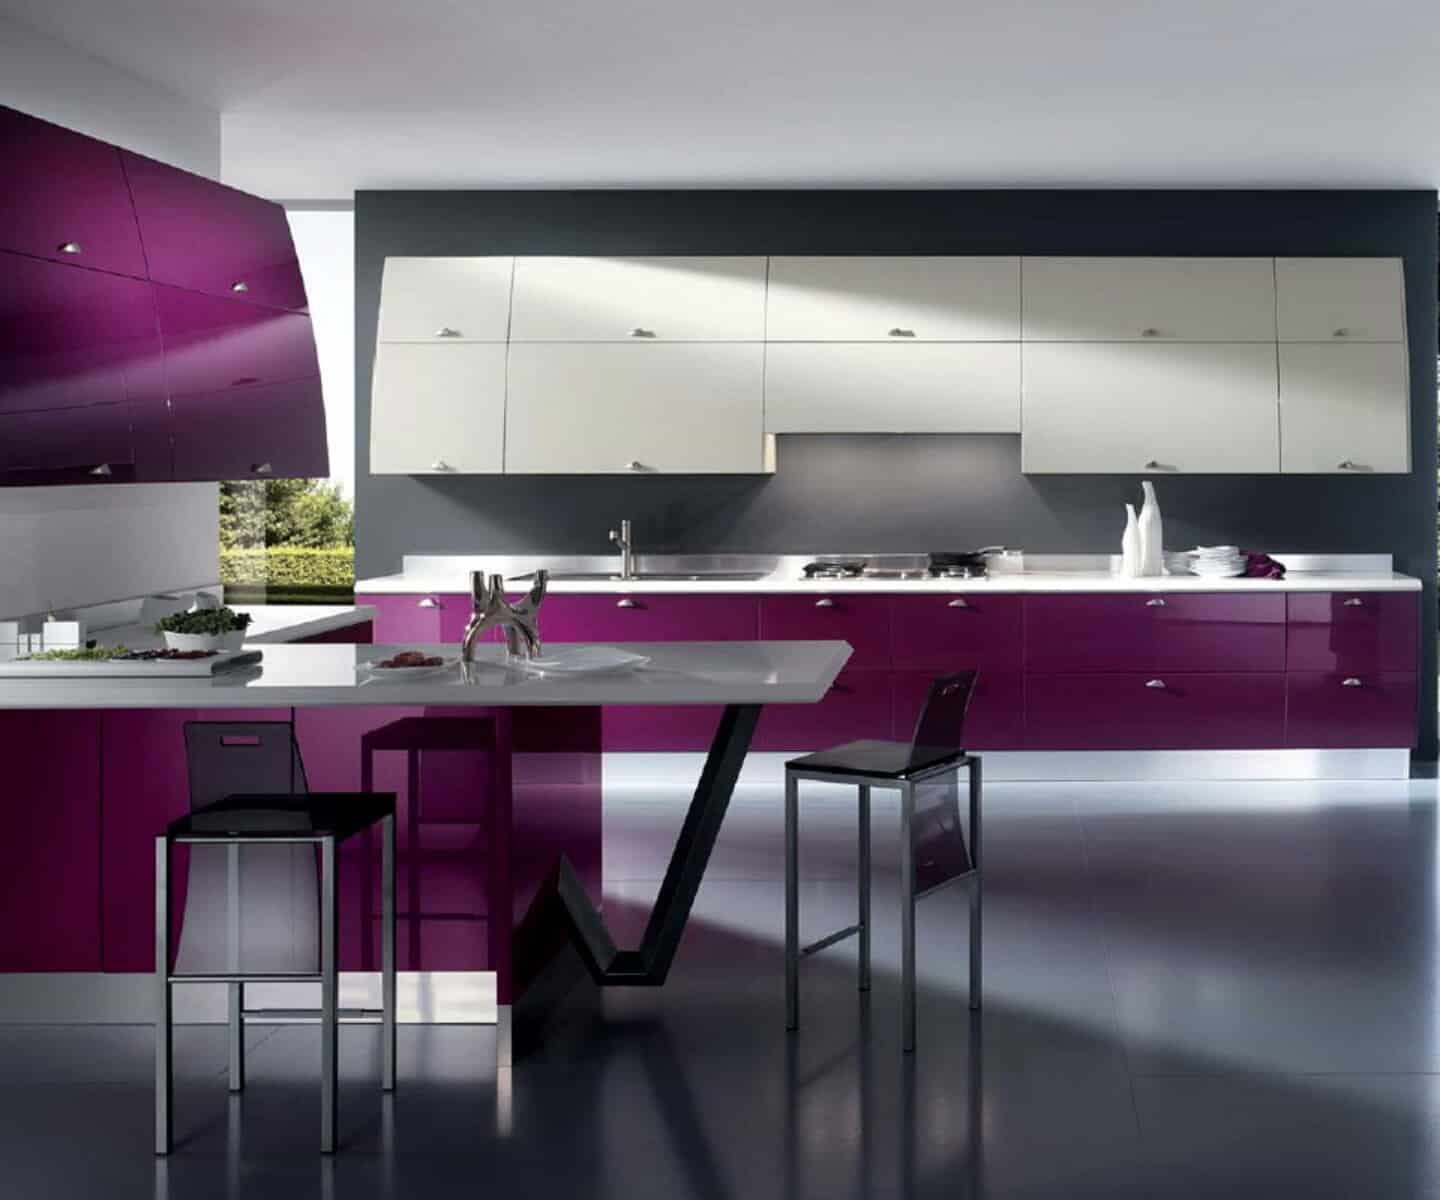 2017 Kitchen Interior Design Trends: Interior Design Trends 2017: Purple Kitchen